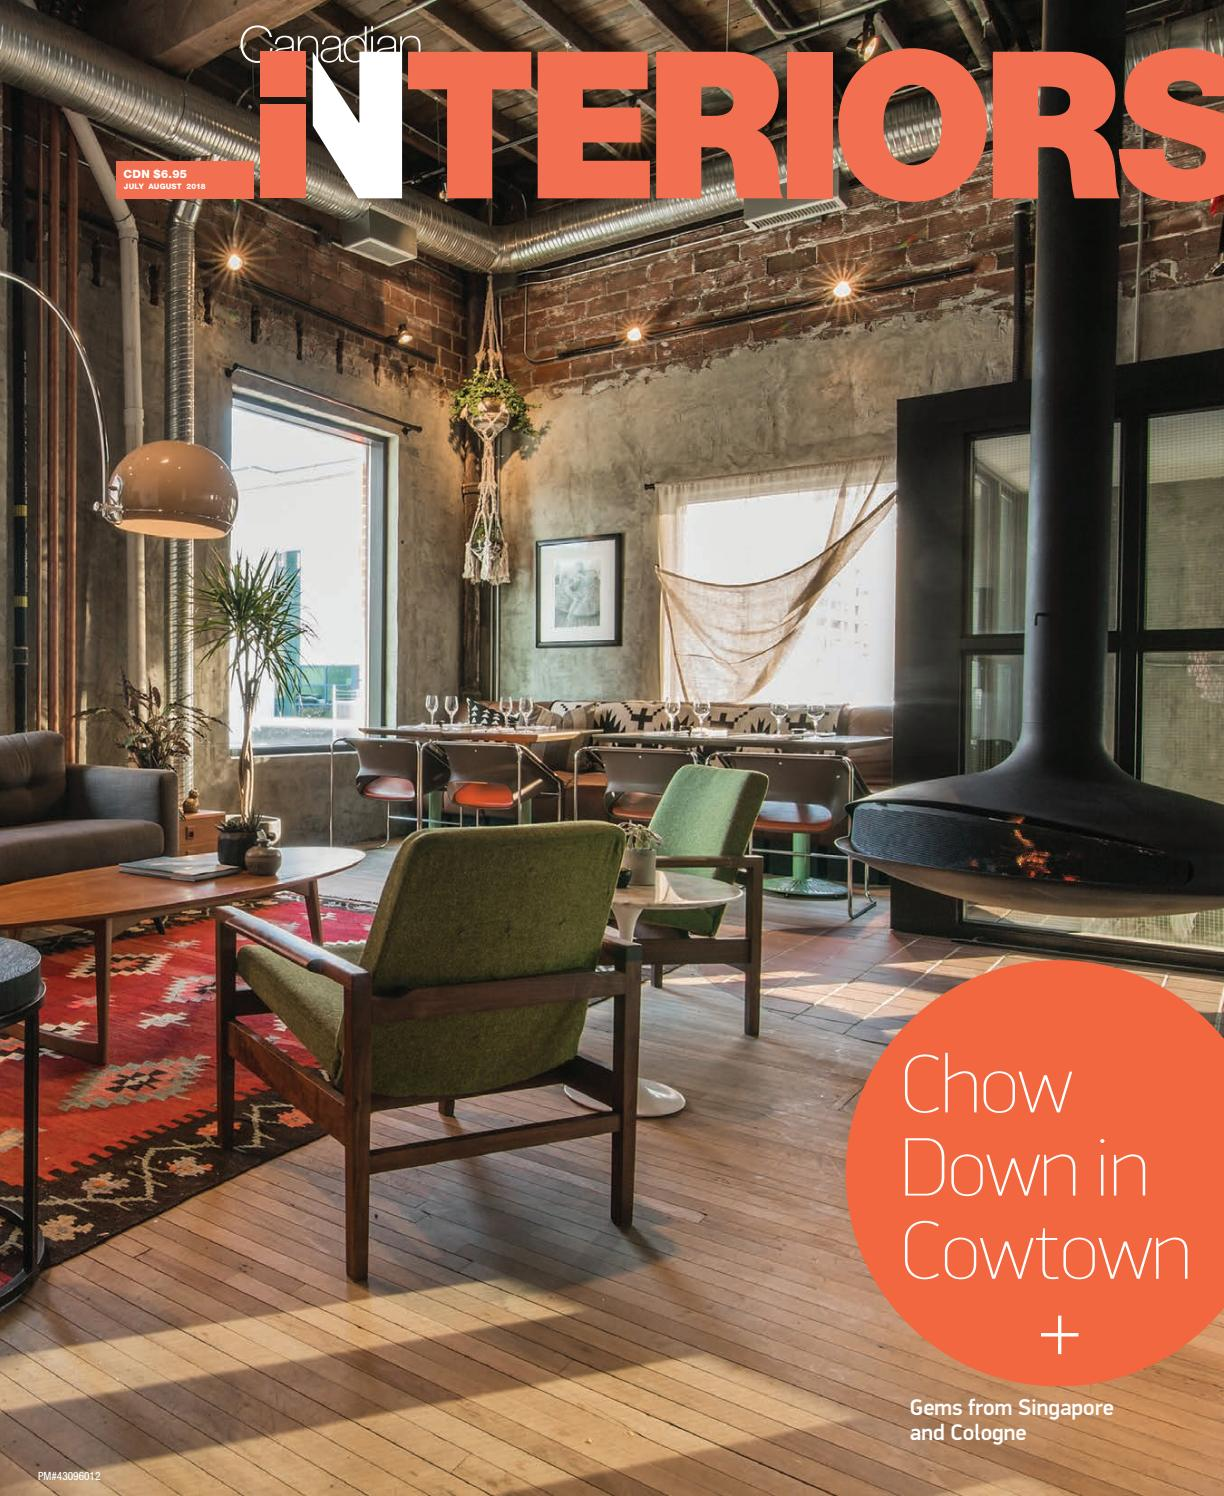 Canadian interiors july august 2018 by iq business media issuu